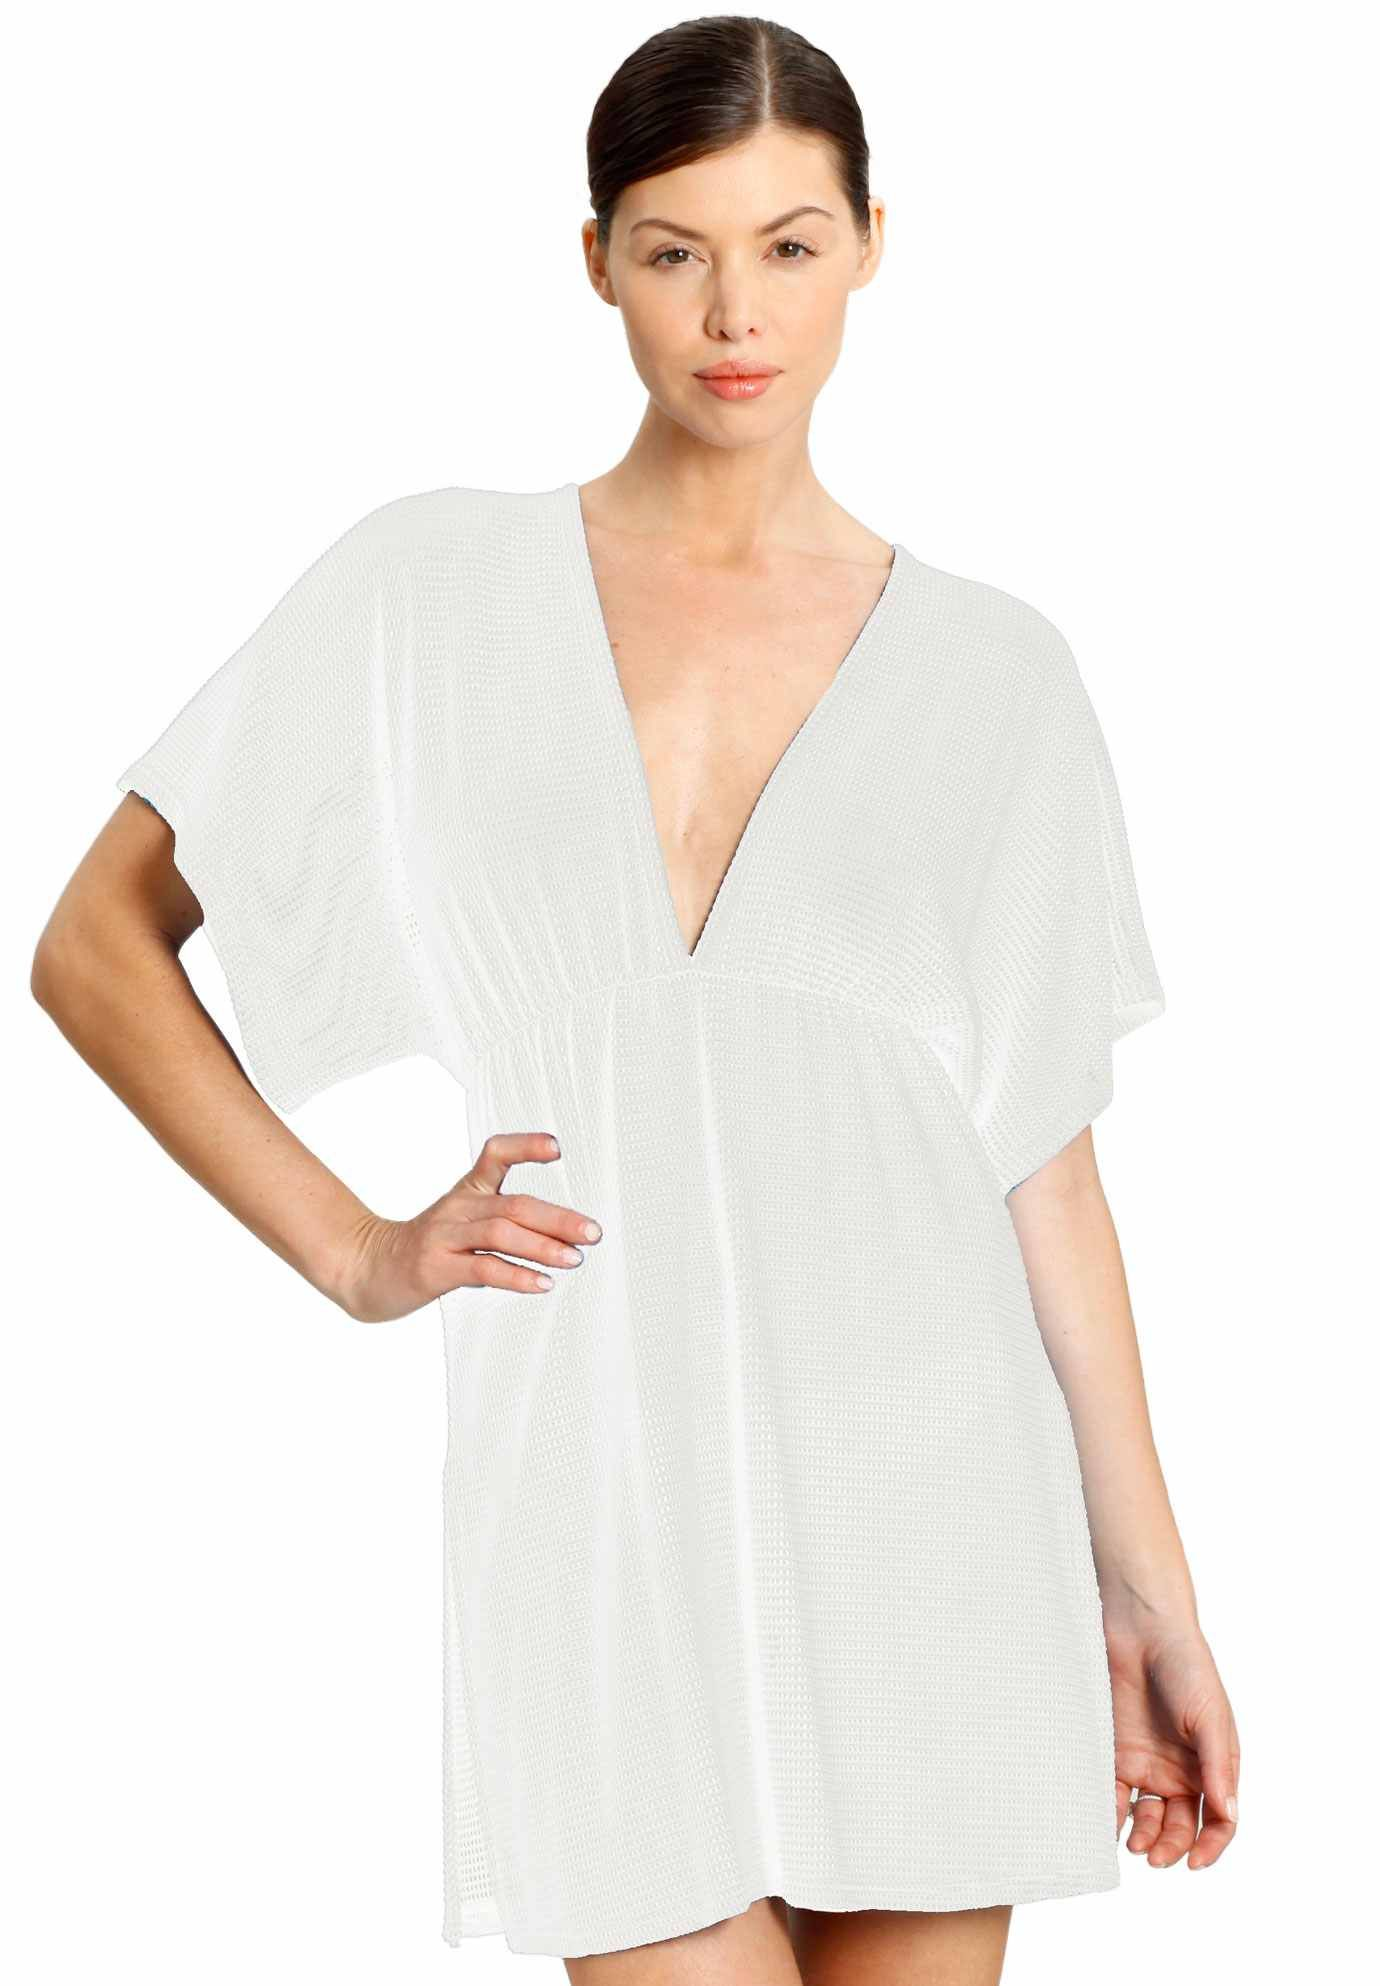 5f4c7ce16367 Gofret Dolman Sleeve V-Neck Tunic by Jordan Taylor in white.  56 at  Romans.com rd47277